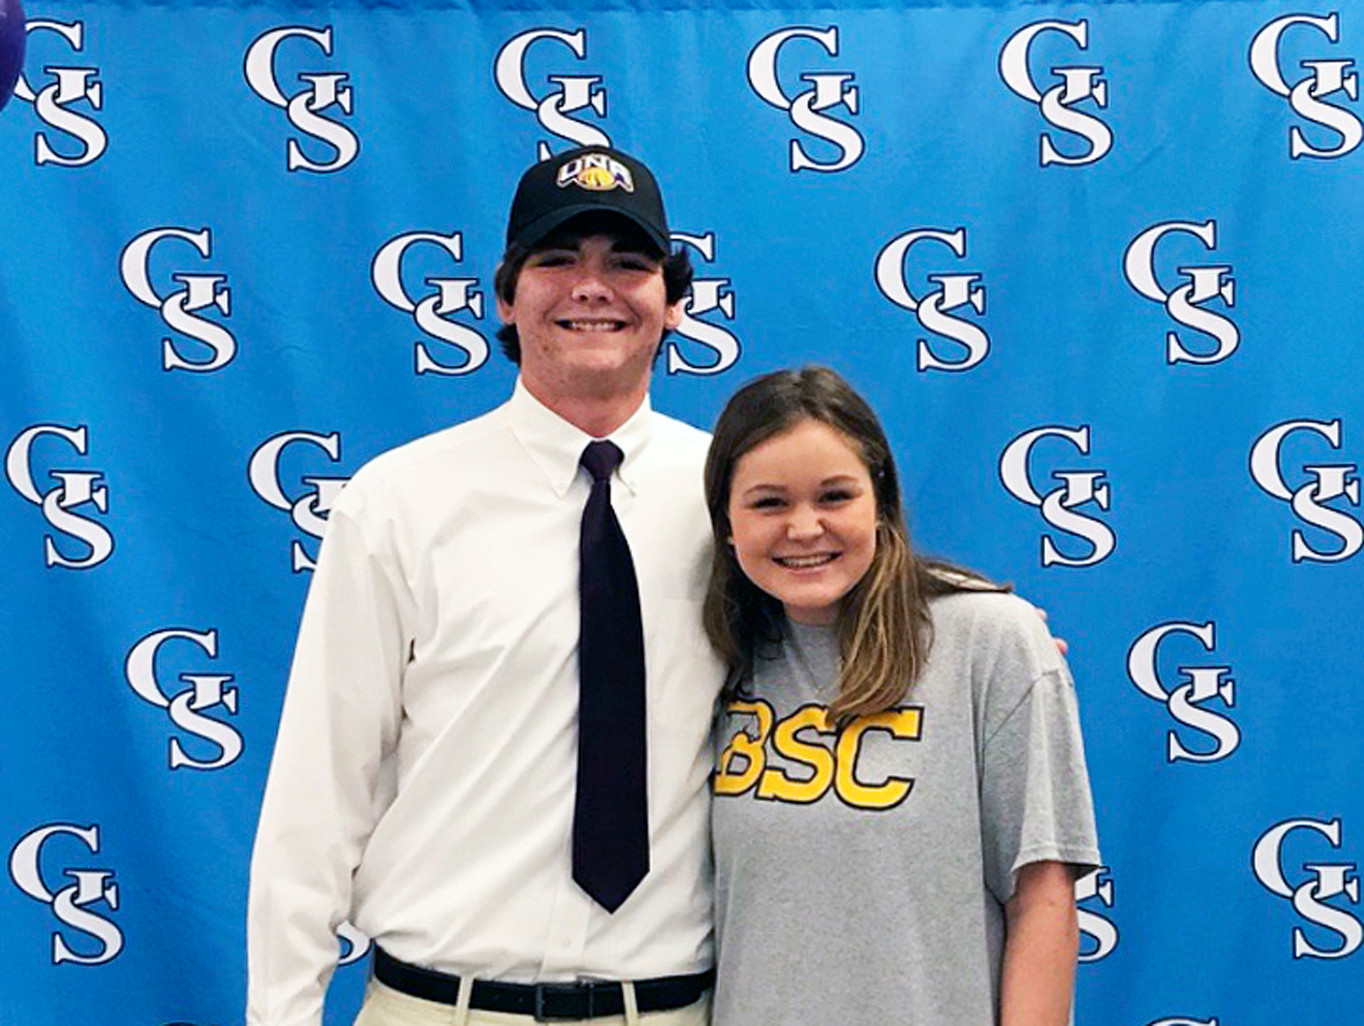 Signing Day at Gulf Shores High - UNA signee Rett Files and BSC signee Annalane Lee.